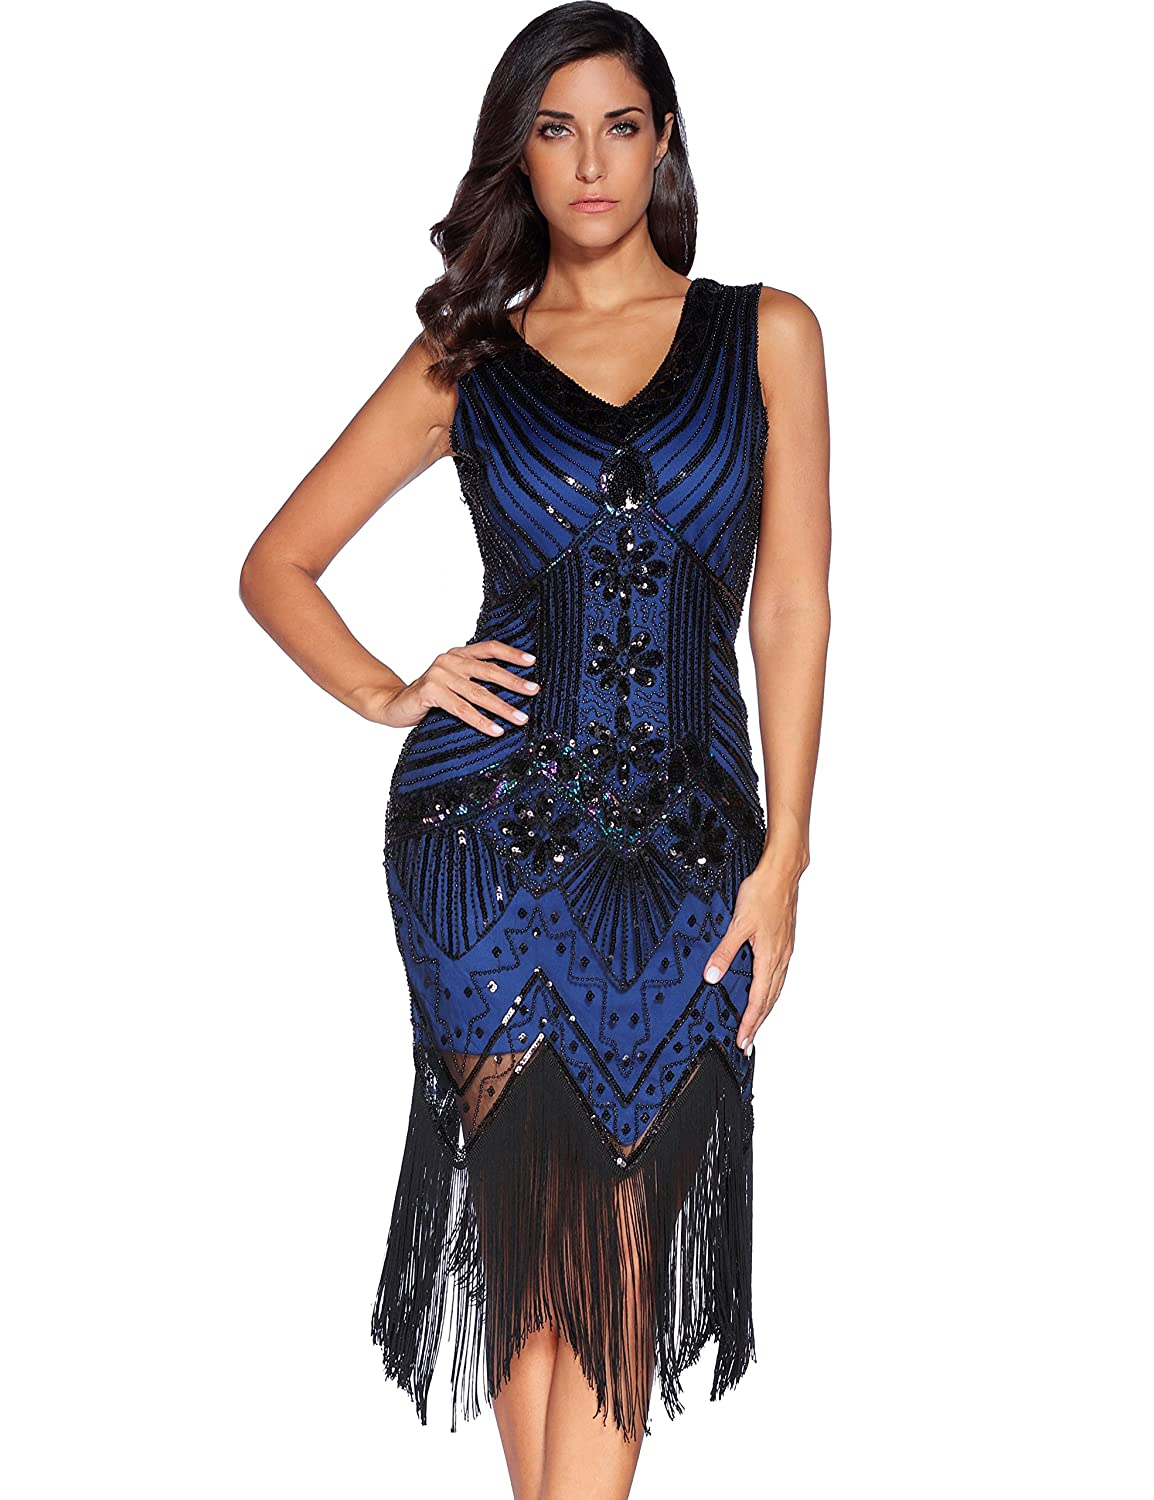 Roaring 20s Costumes- Flapper Costumes, Gangster Costumes Meilun 1920s Sequined Vintage Dress Beaded Gatsby Flapper Evening Dress Prom $37.50 AT vintagedancer.com